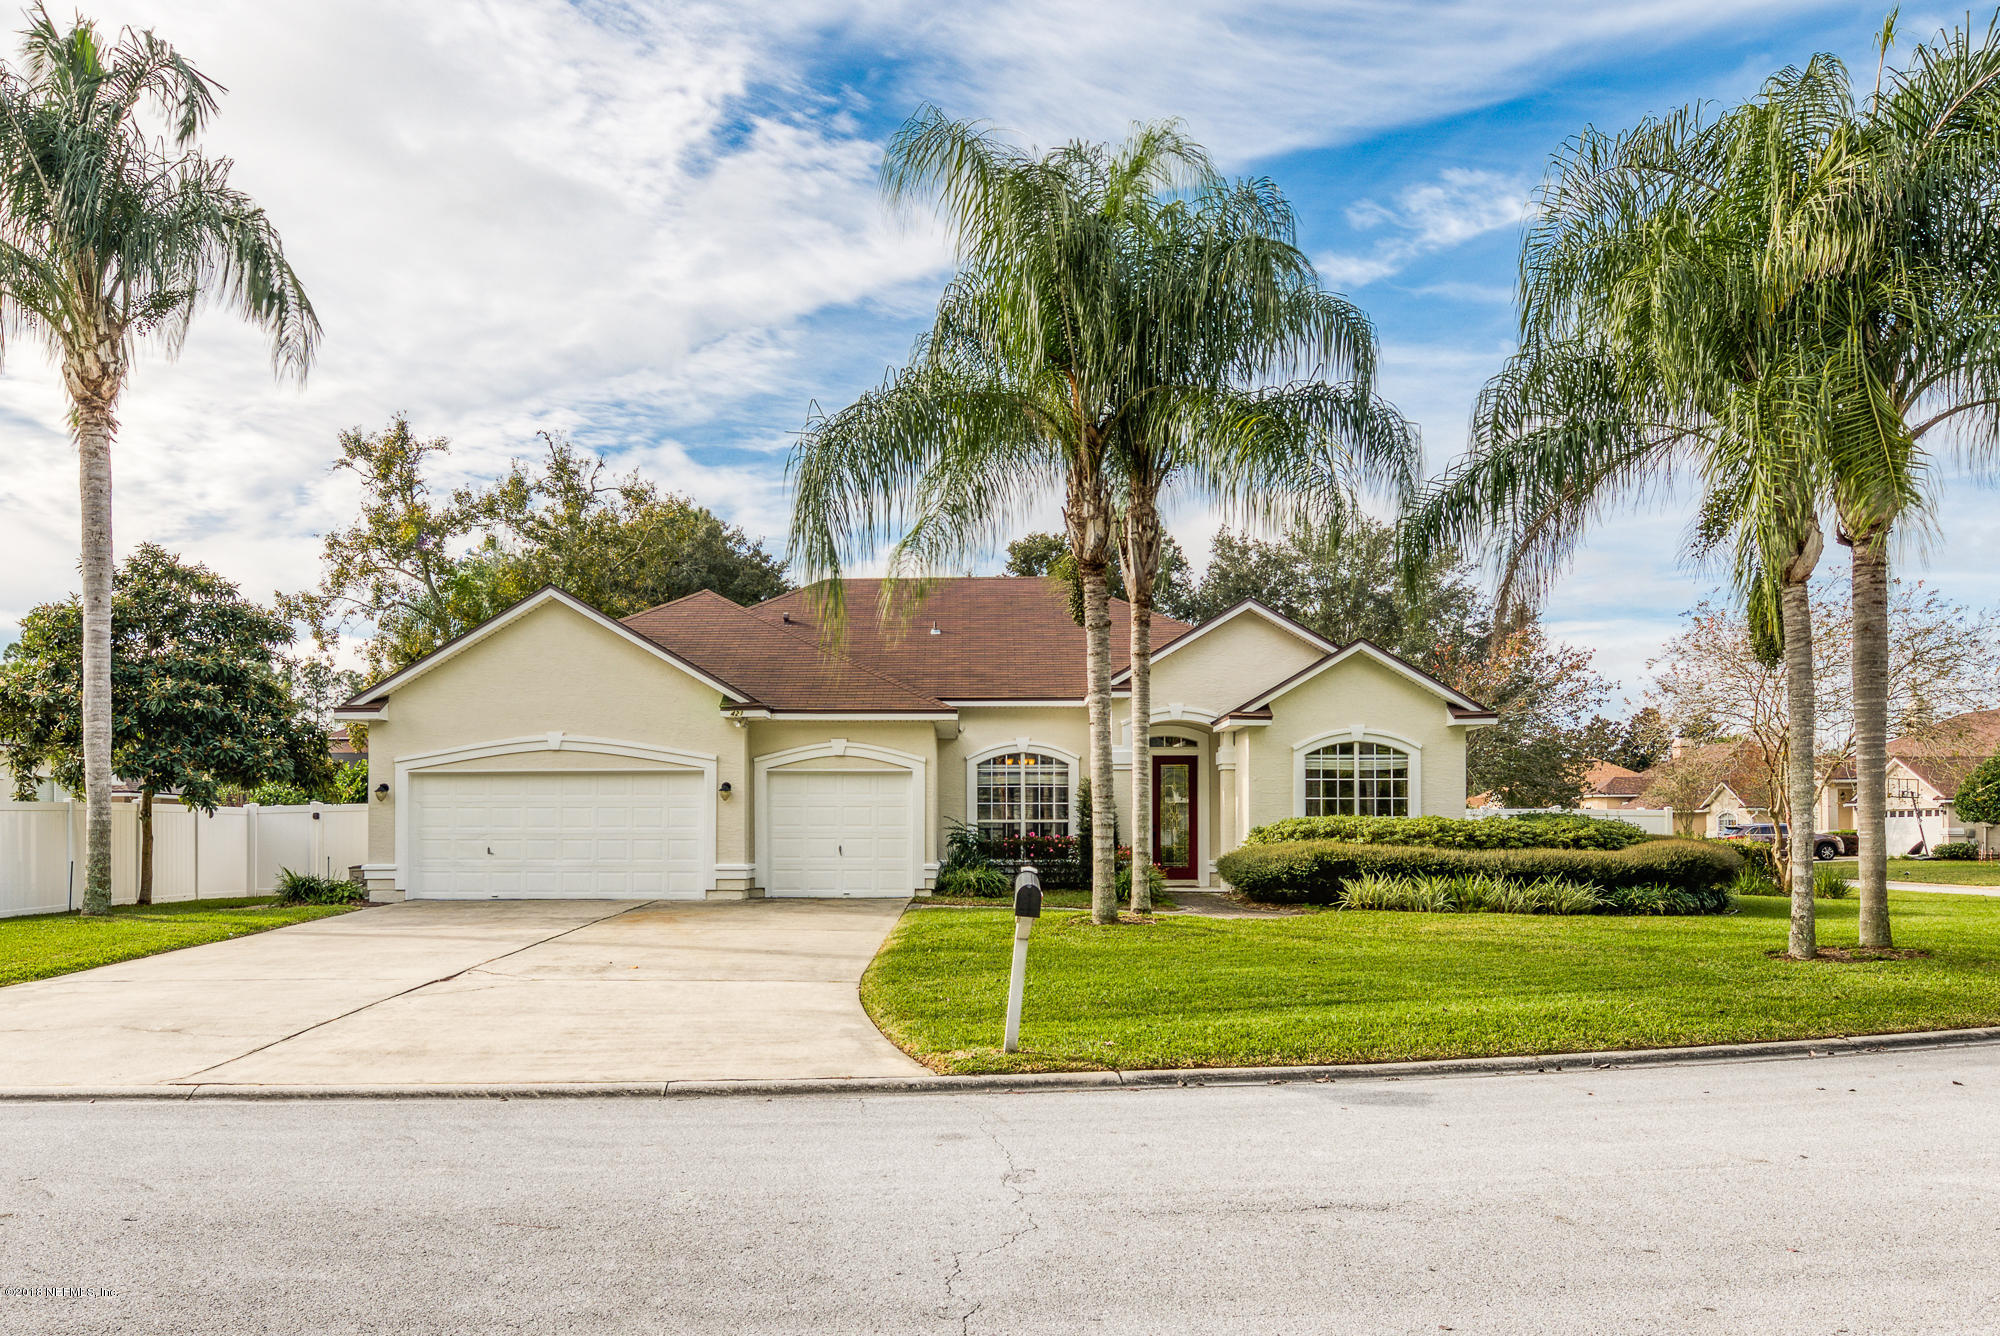 421 ASTER, ST JOHNS, FLORIDA 32259, 5 Bedrooms Bedrooms, ,4 BathroomsBathrooms,Residential - single family,For sale,ASTER,971189